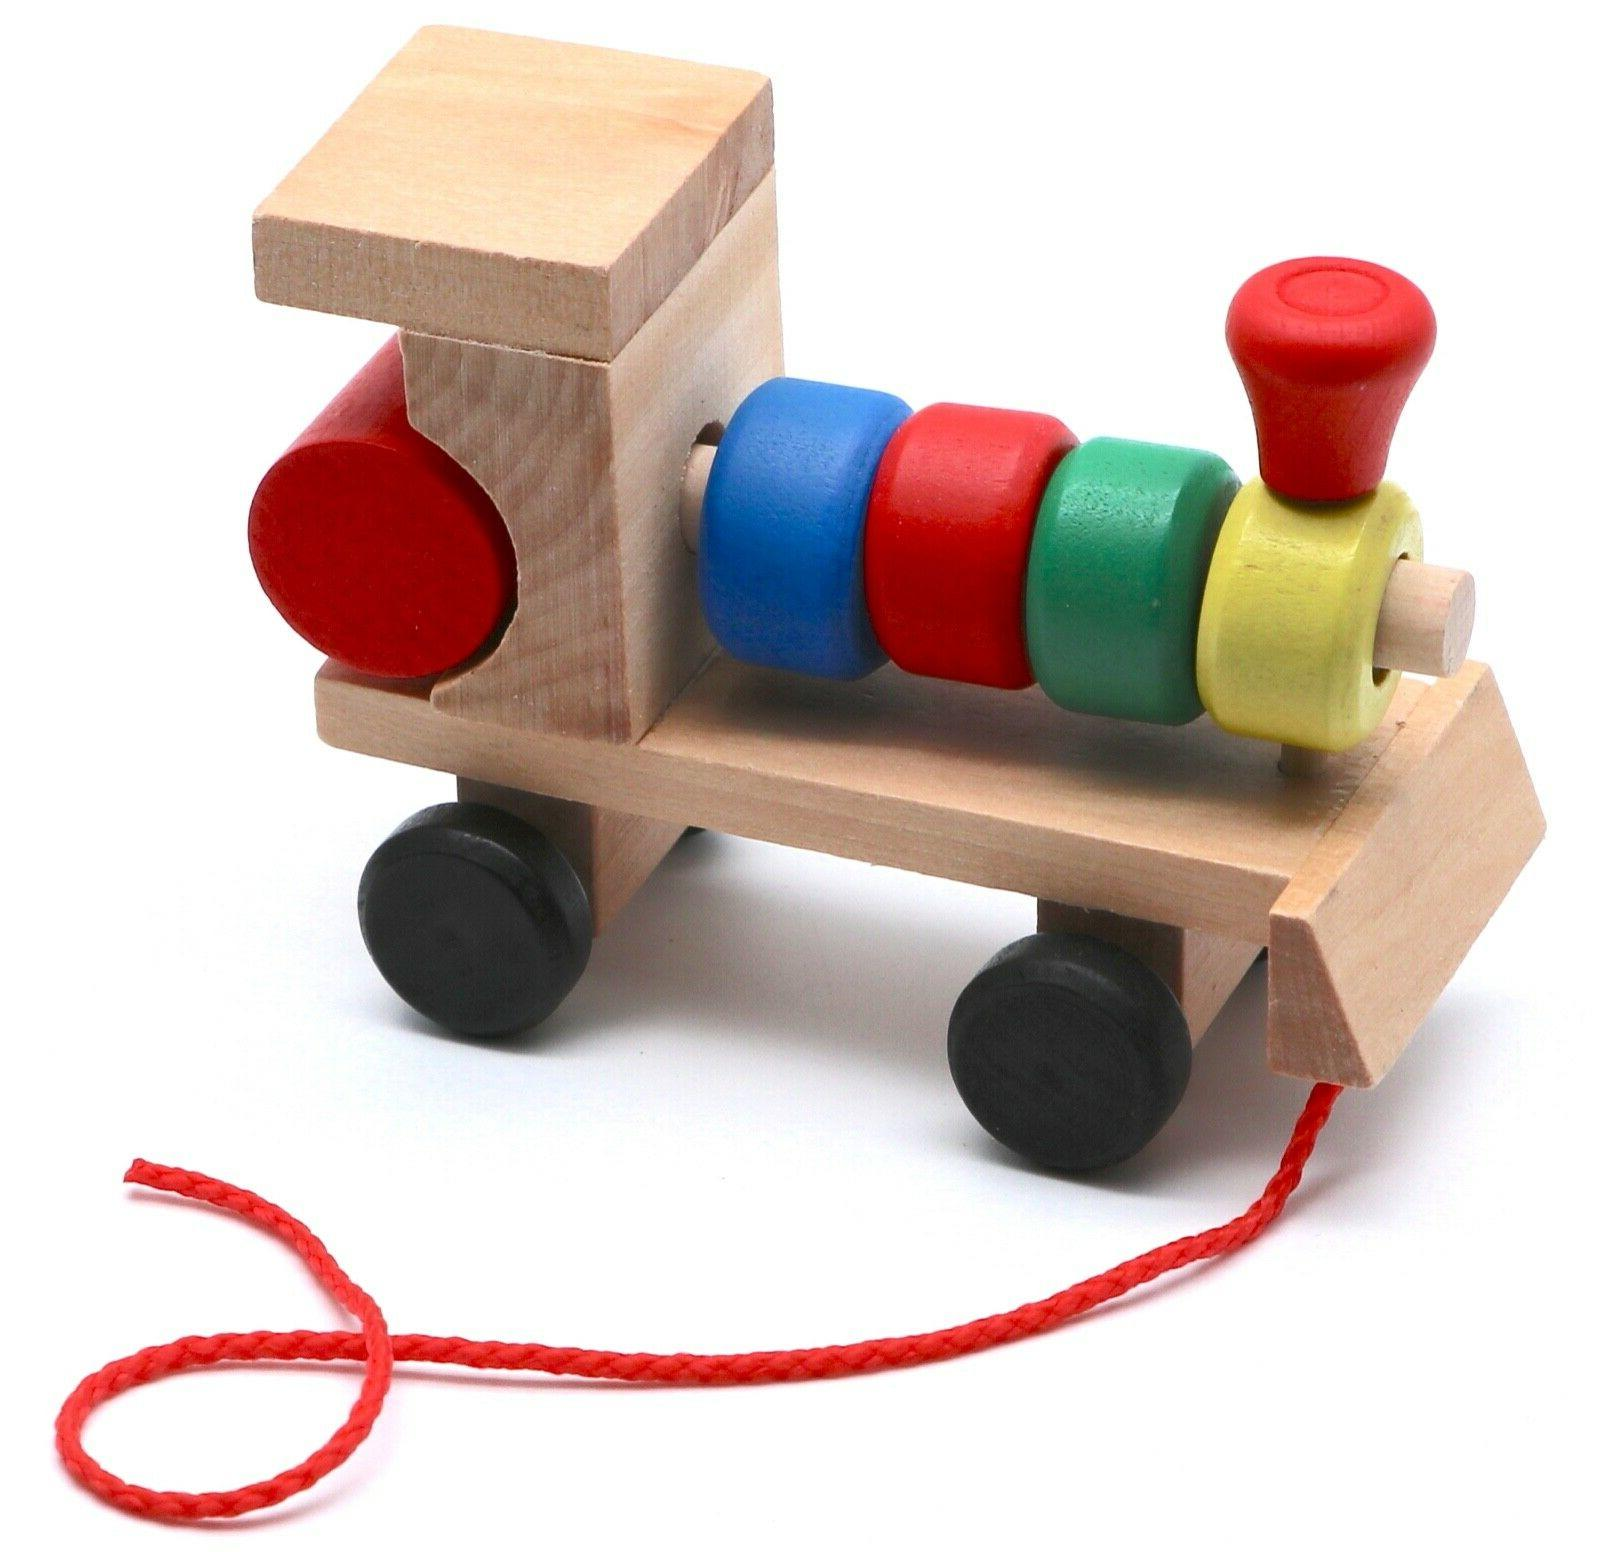 Montessori Educational Wooden Train Figures for Babies Toddlers,